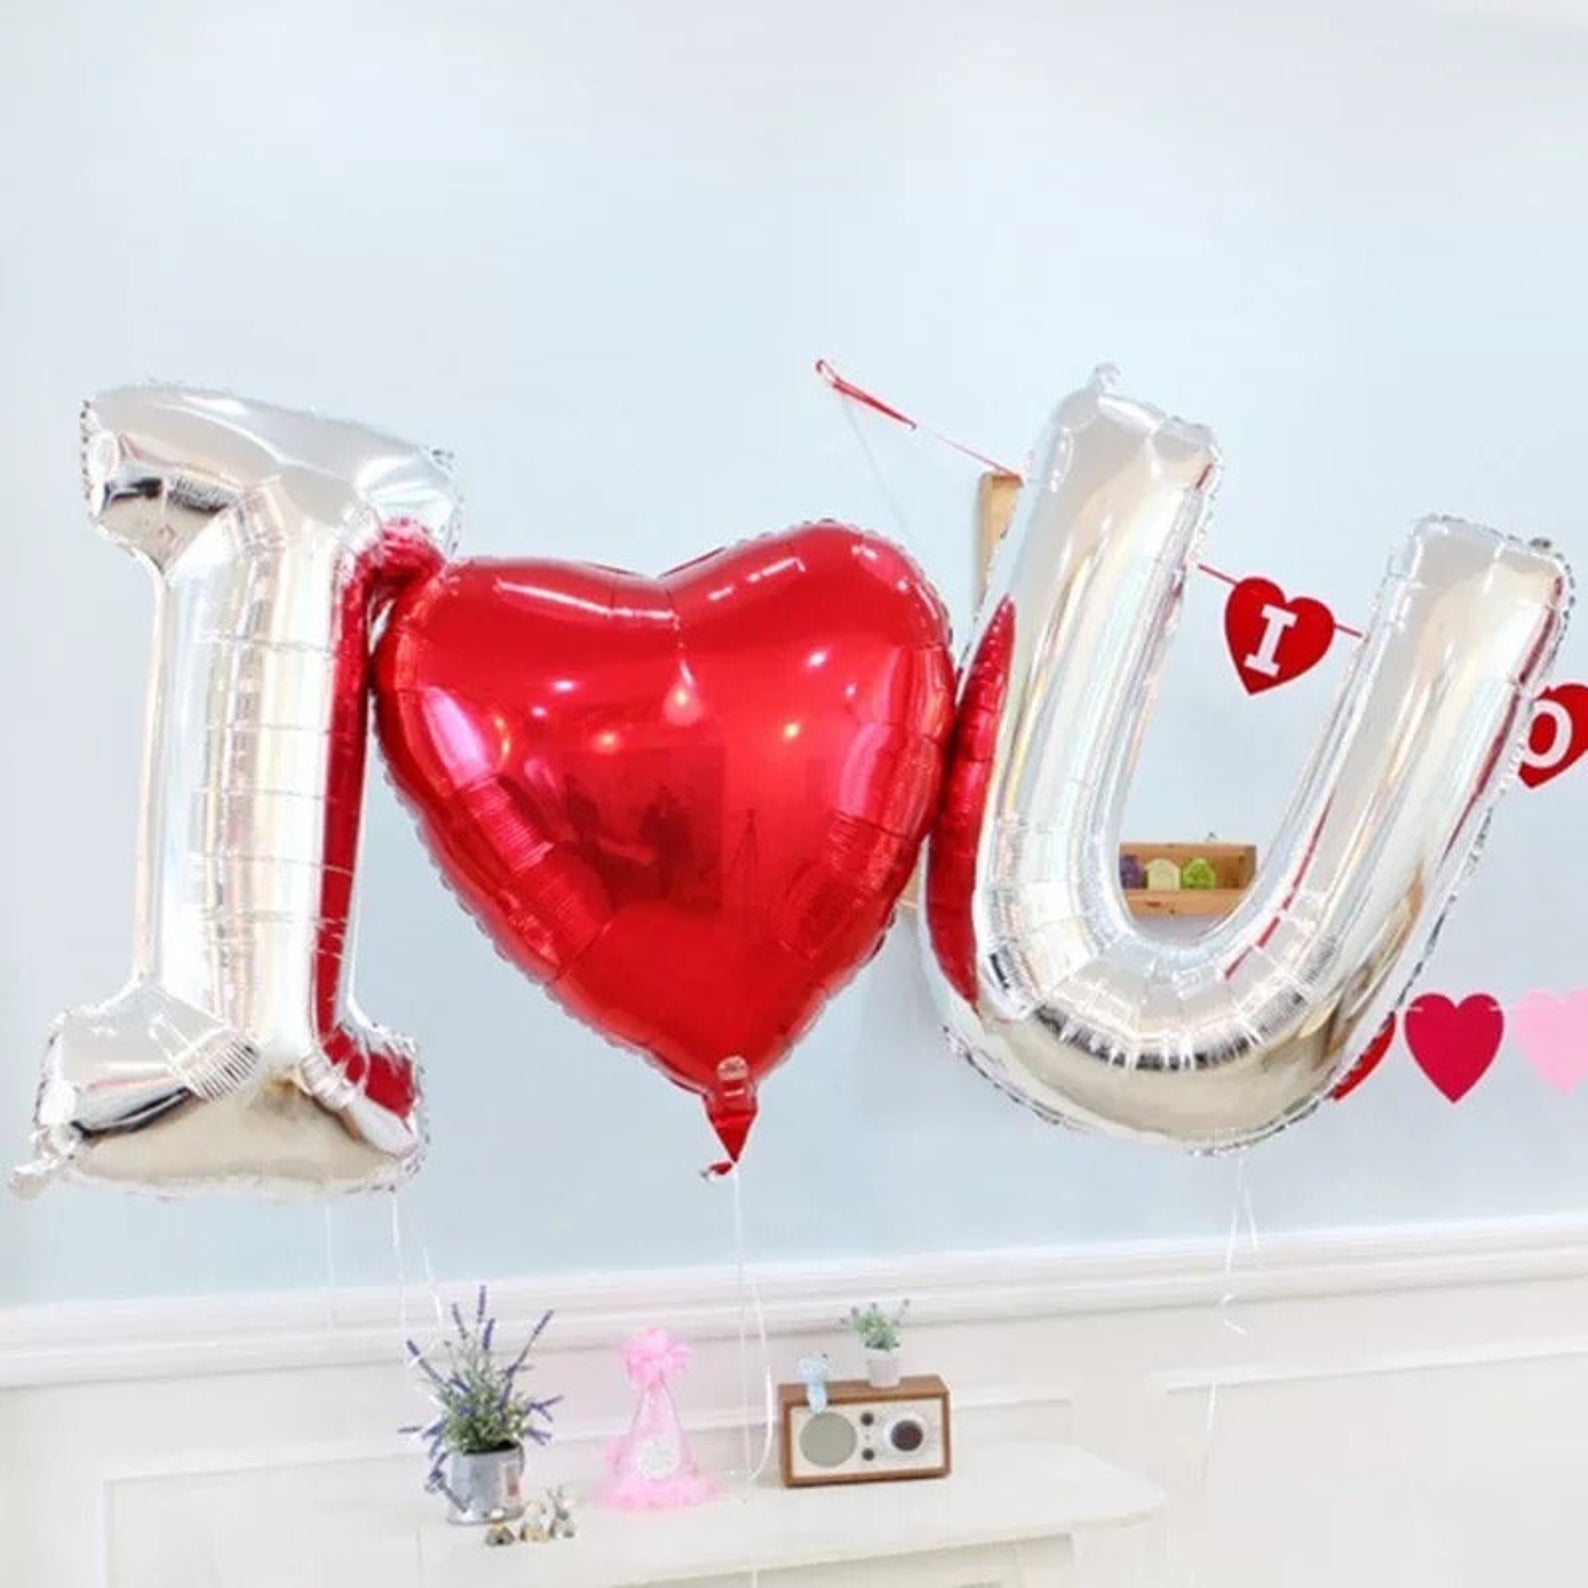 I Love You Balloon (doesn't fly)